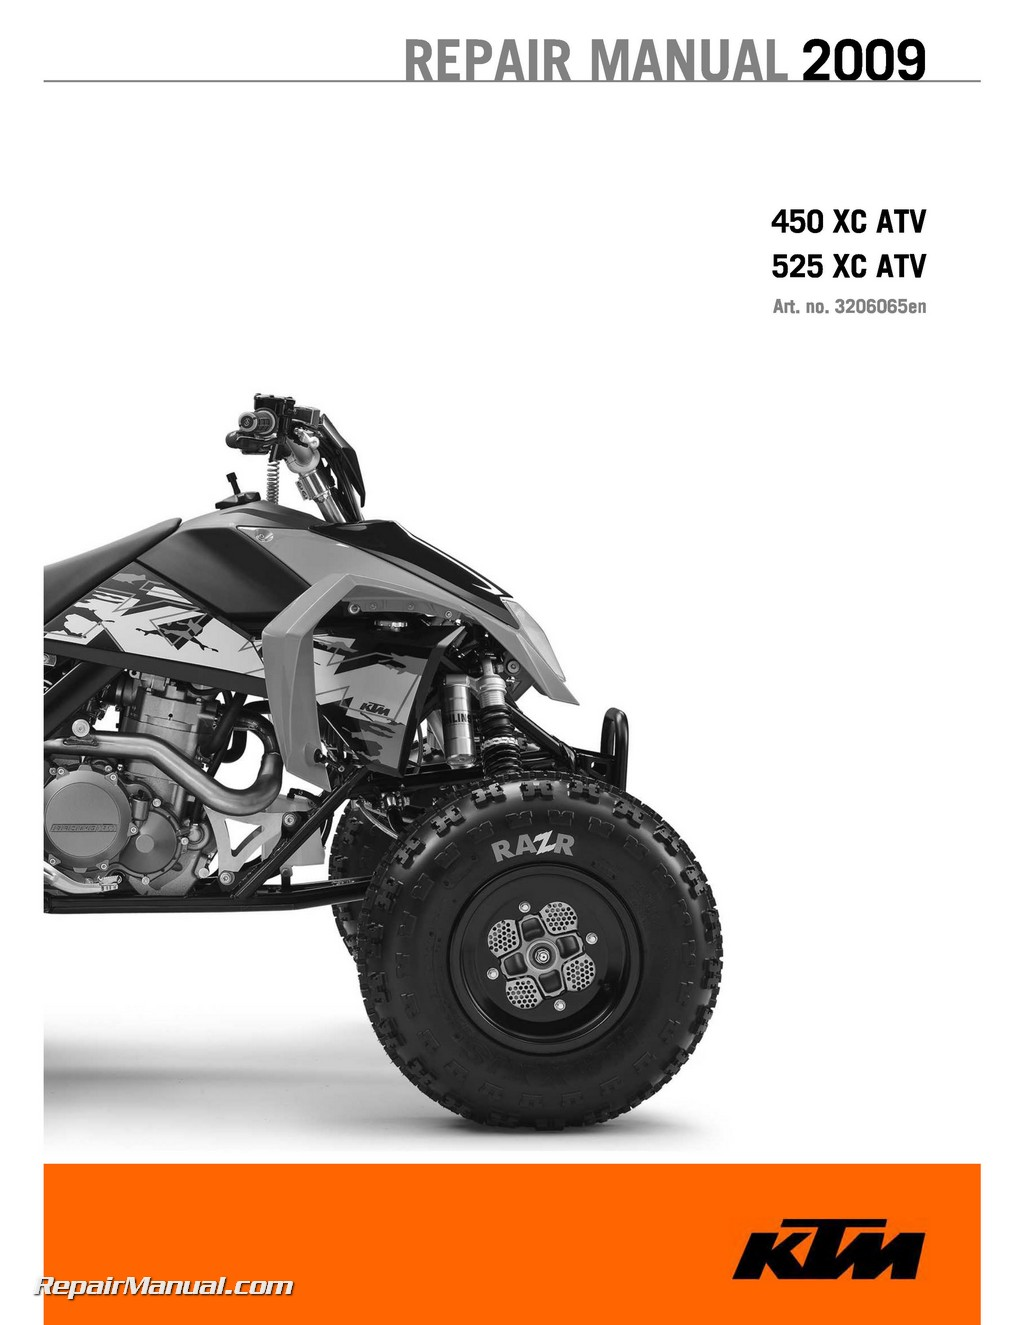 2009 Ktm 450 525 Xc Atv Repair Manual ATV Clutch Diagram Atv Repair Diagram